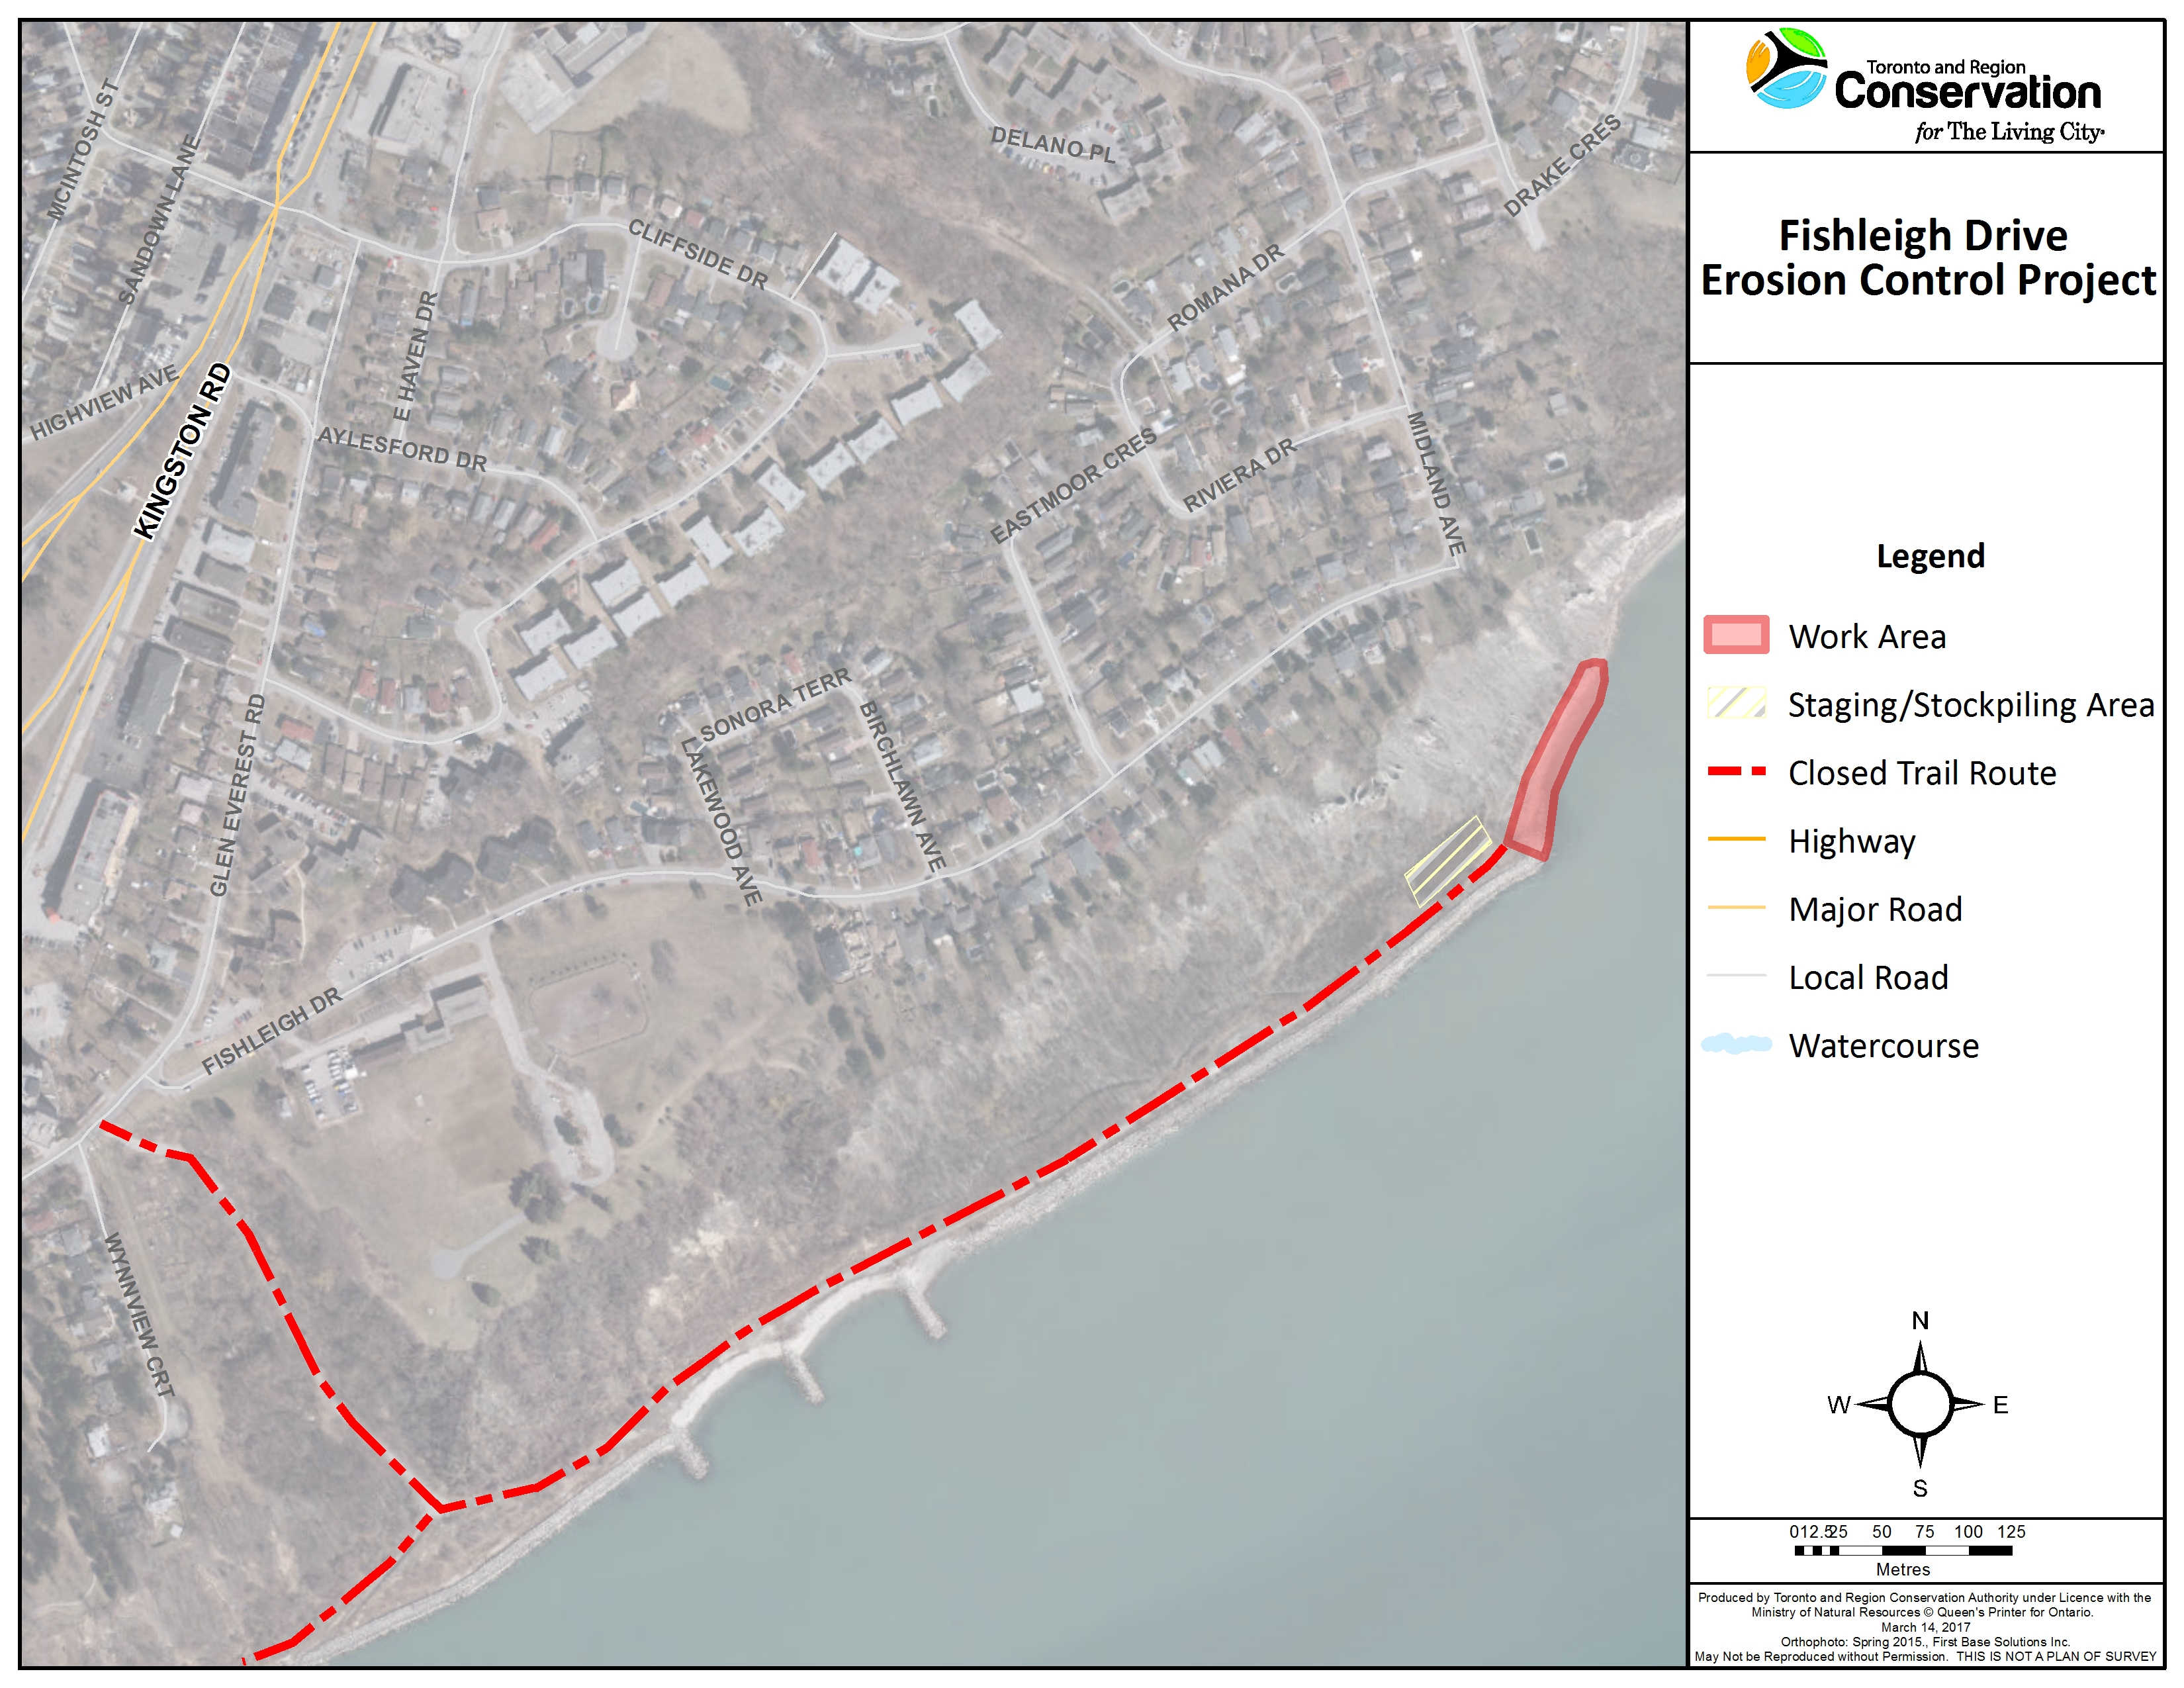 Fishleigh Drive Erosion Control Project map